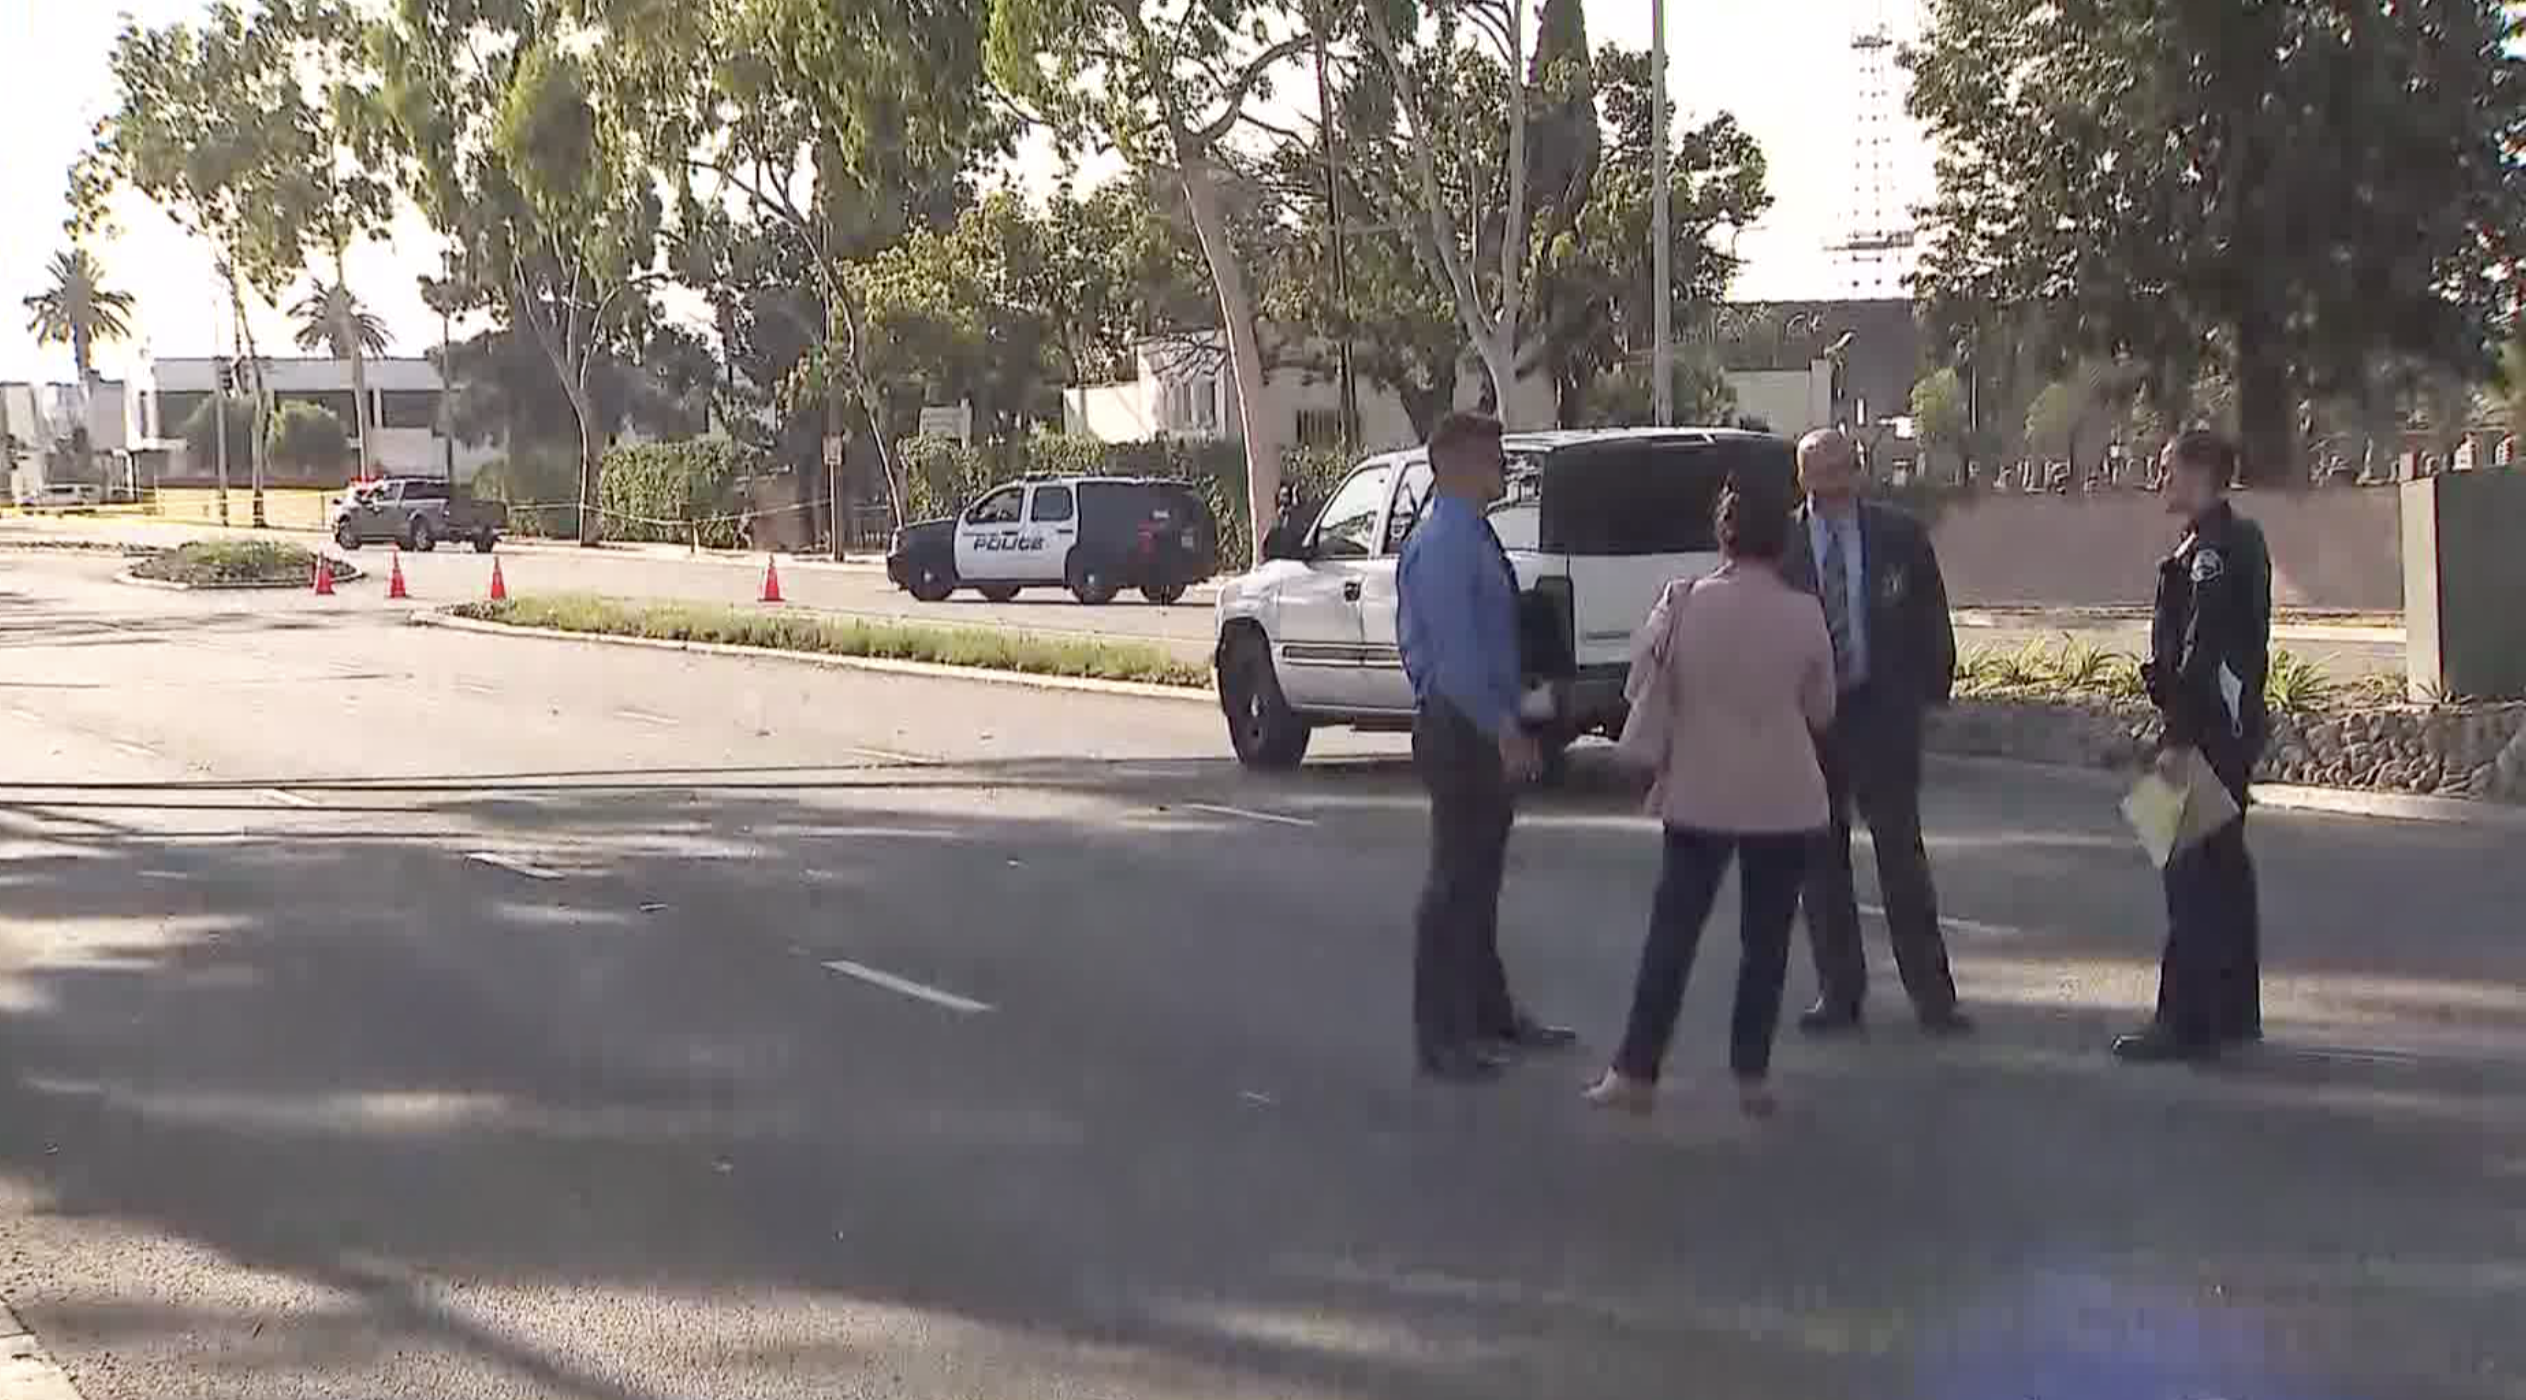 Authorities respond to investigate a deadly police shooting in Signal Hill on Sept. 20, 2021. (KTLA)